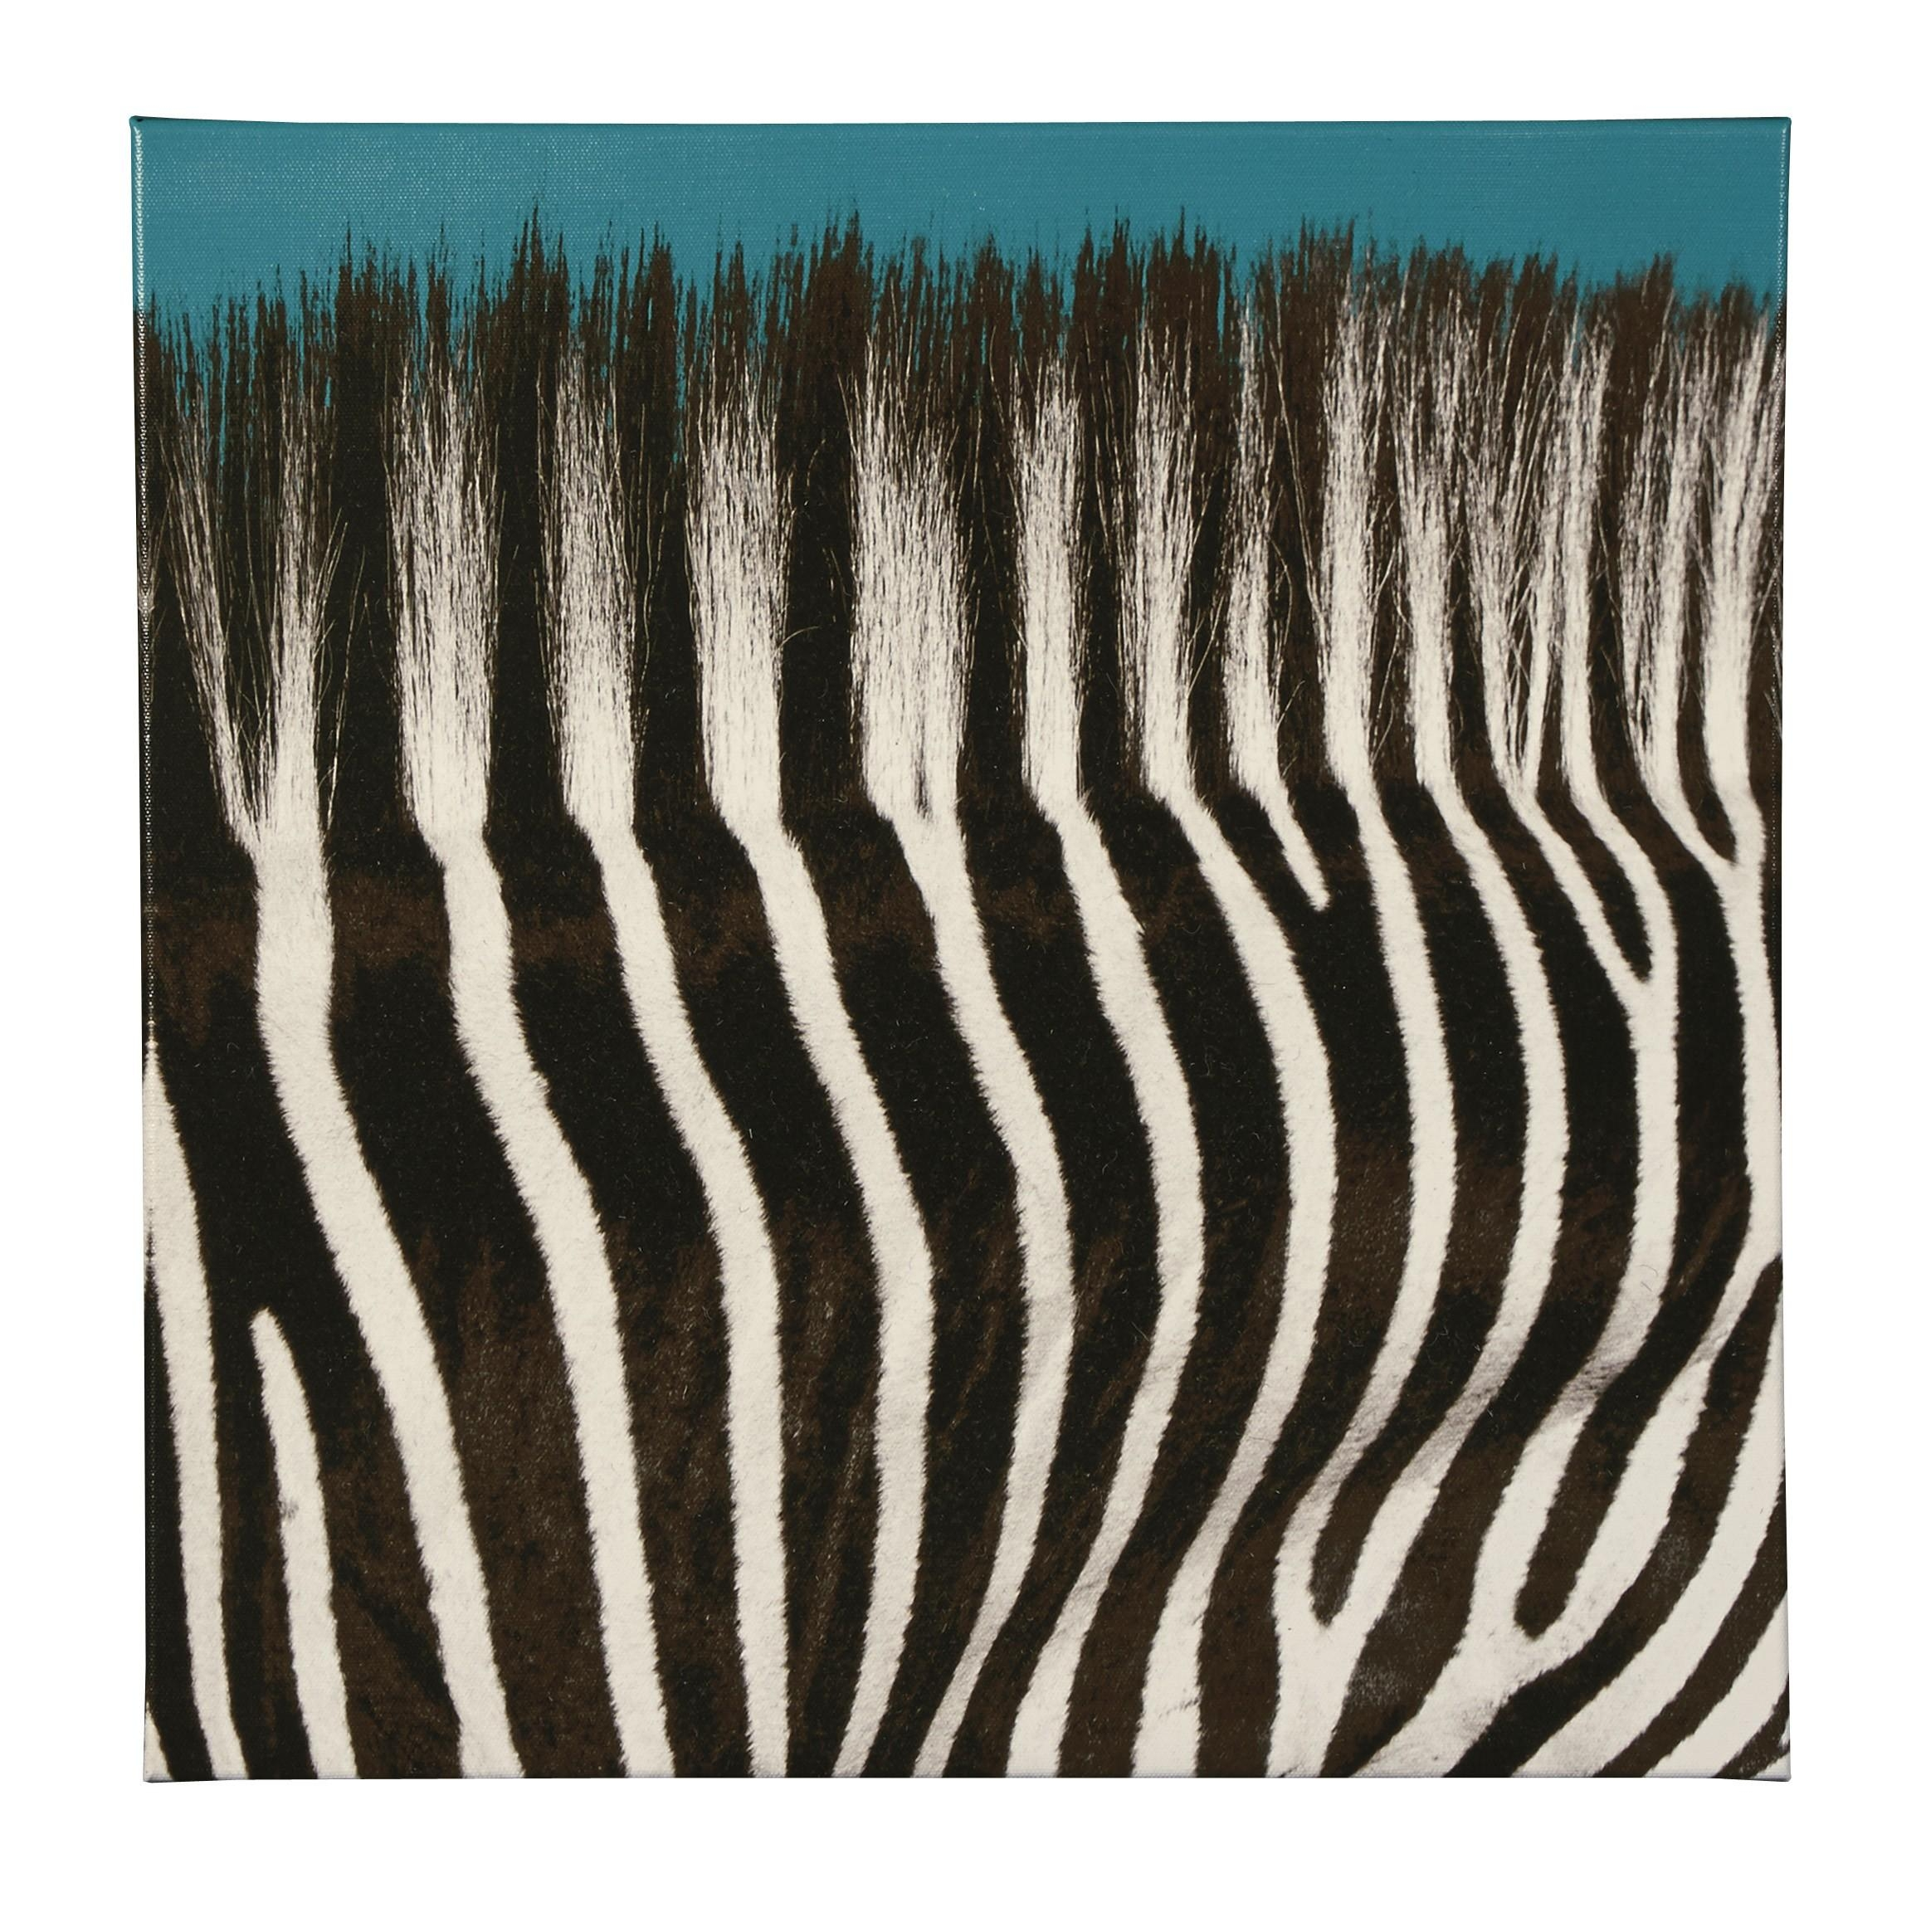 Jabbar Black/white/teal Wall Art - S&s Furniture Inc in Black and Teal Wall Art